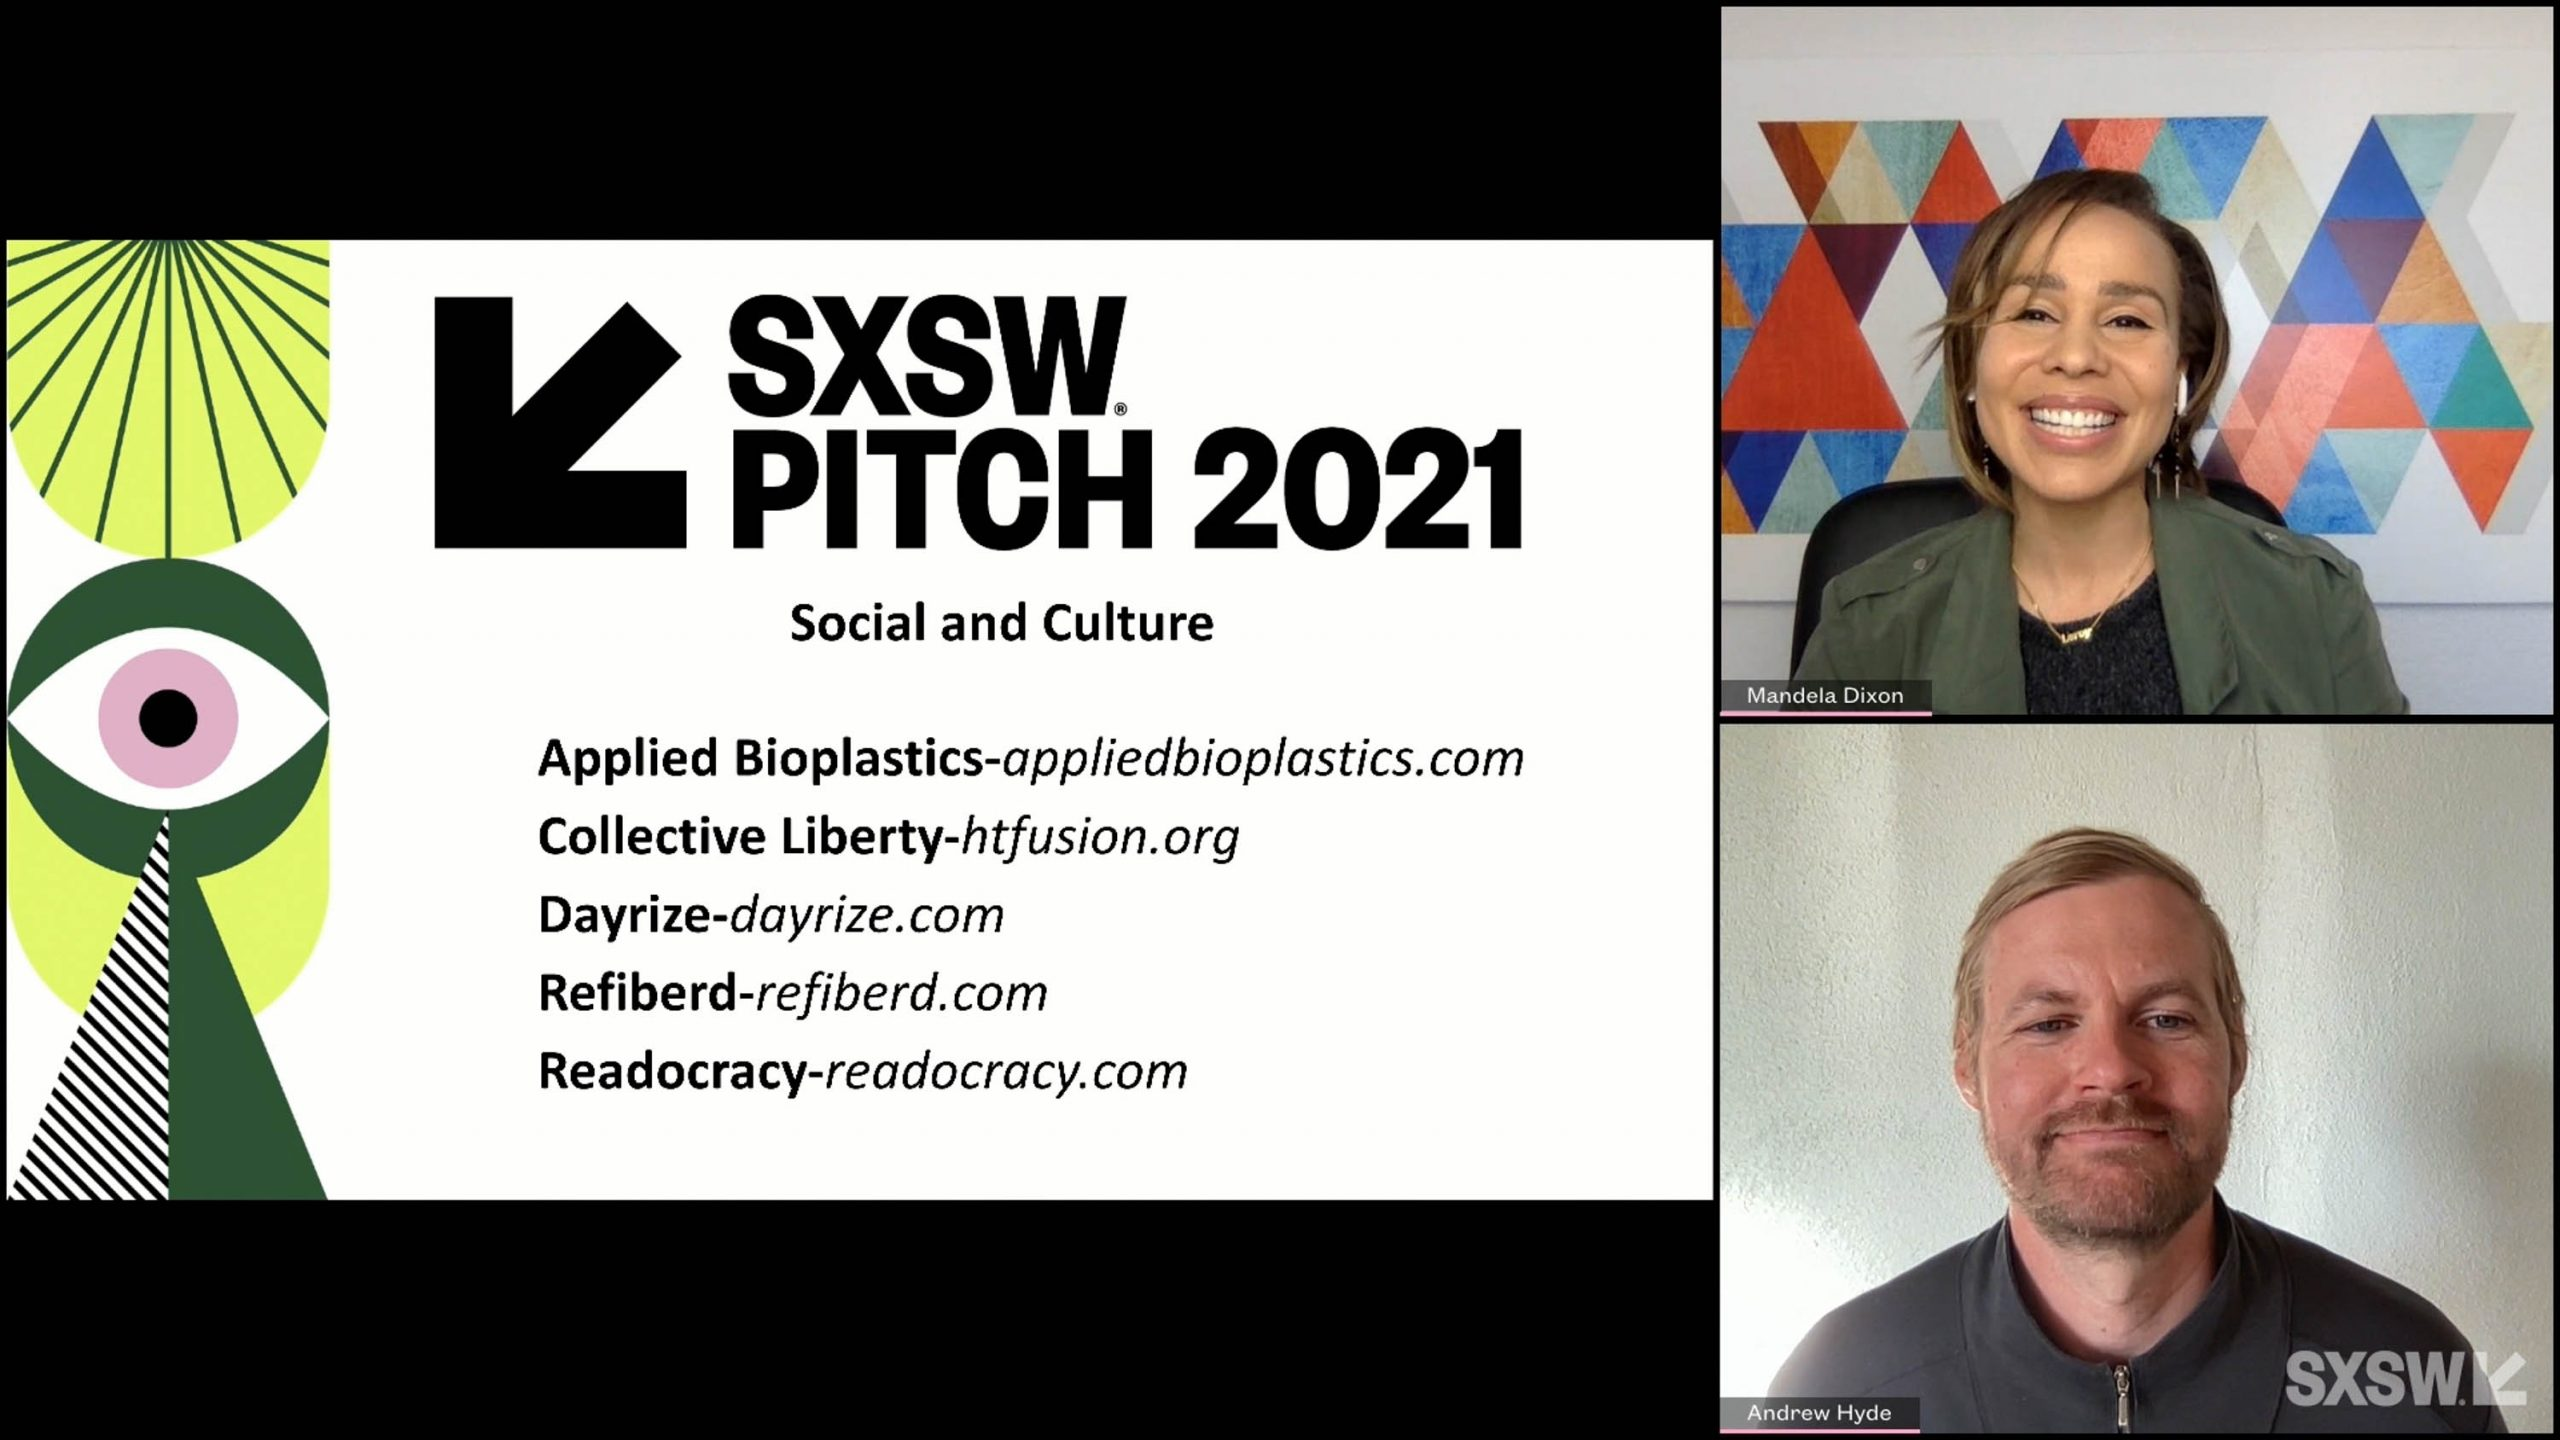 SXSW Pitch participant Applied Bioplastics wins the Social and Culture category at the SXSW Pitch Awards during SXSW Online on March 20, 2021.